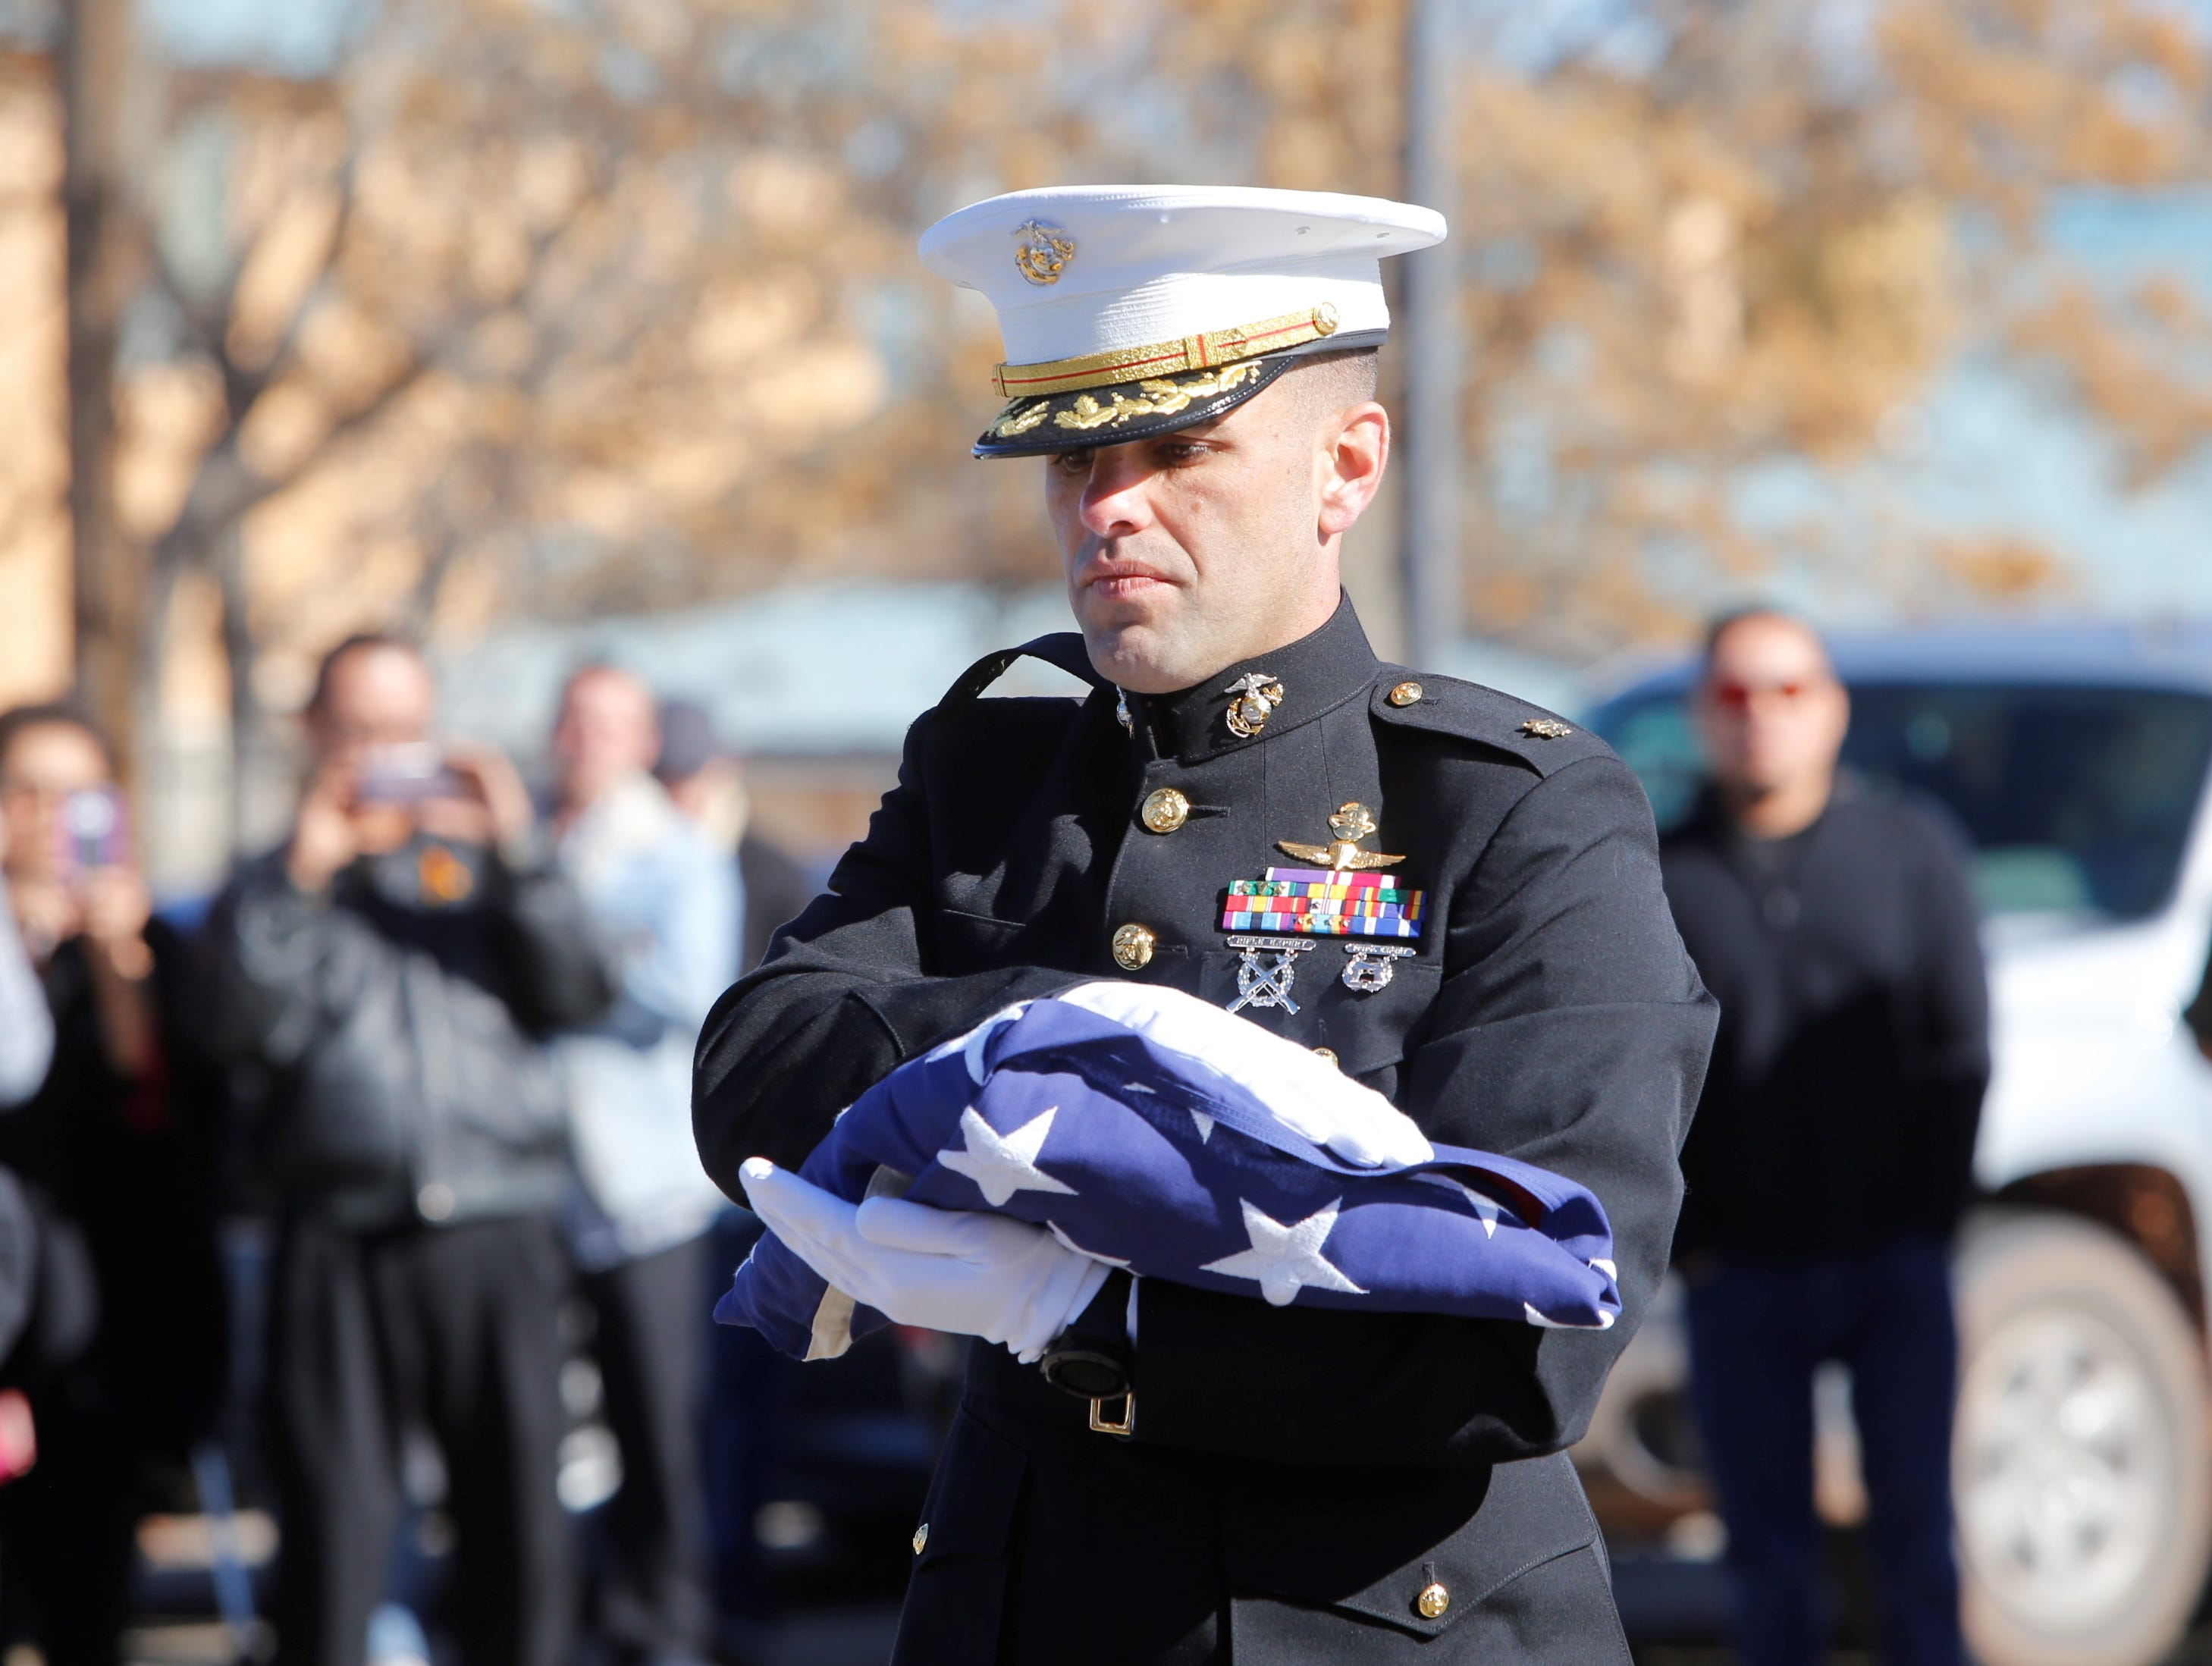 U.S. Marine Corps Maj. Matt Perry prepares to present a flag to the family of Navajo Code Talker Alfred K. Newman Sr. during the funeral service on Saturday in Farmington.